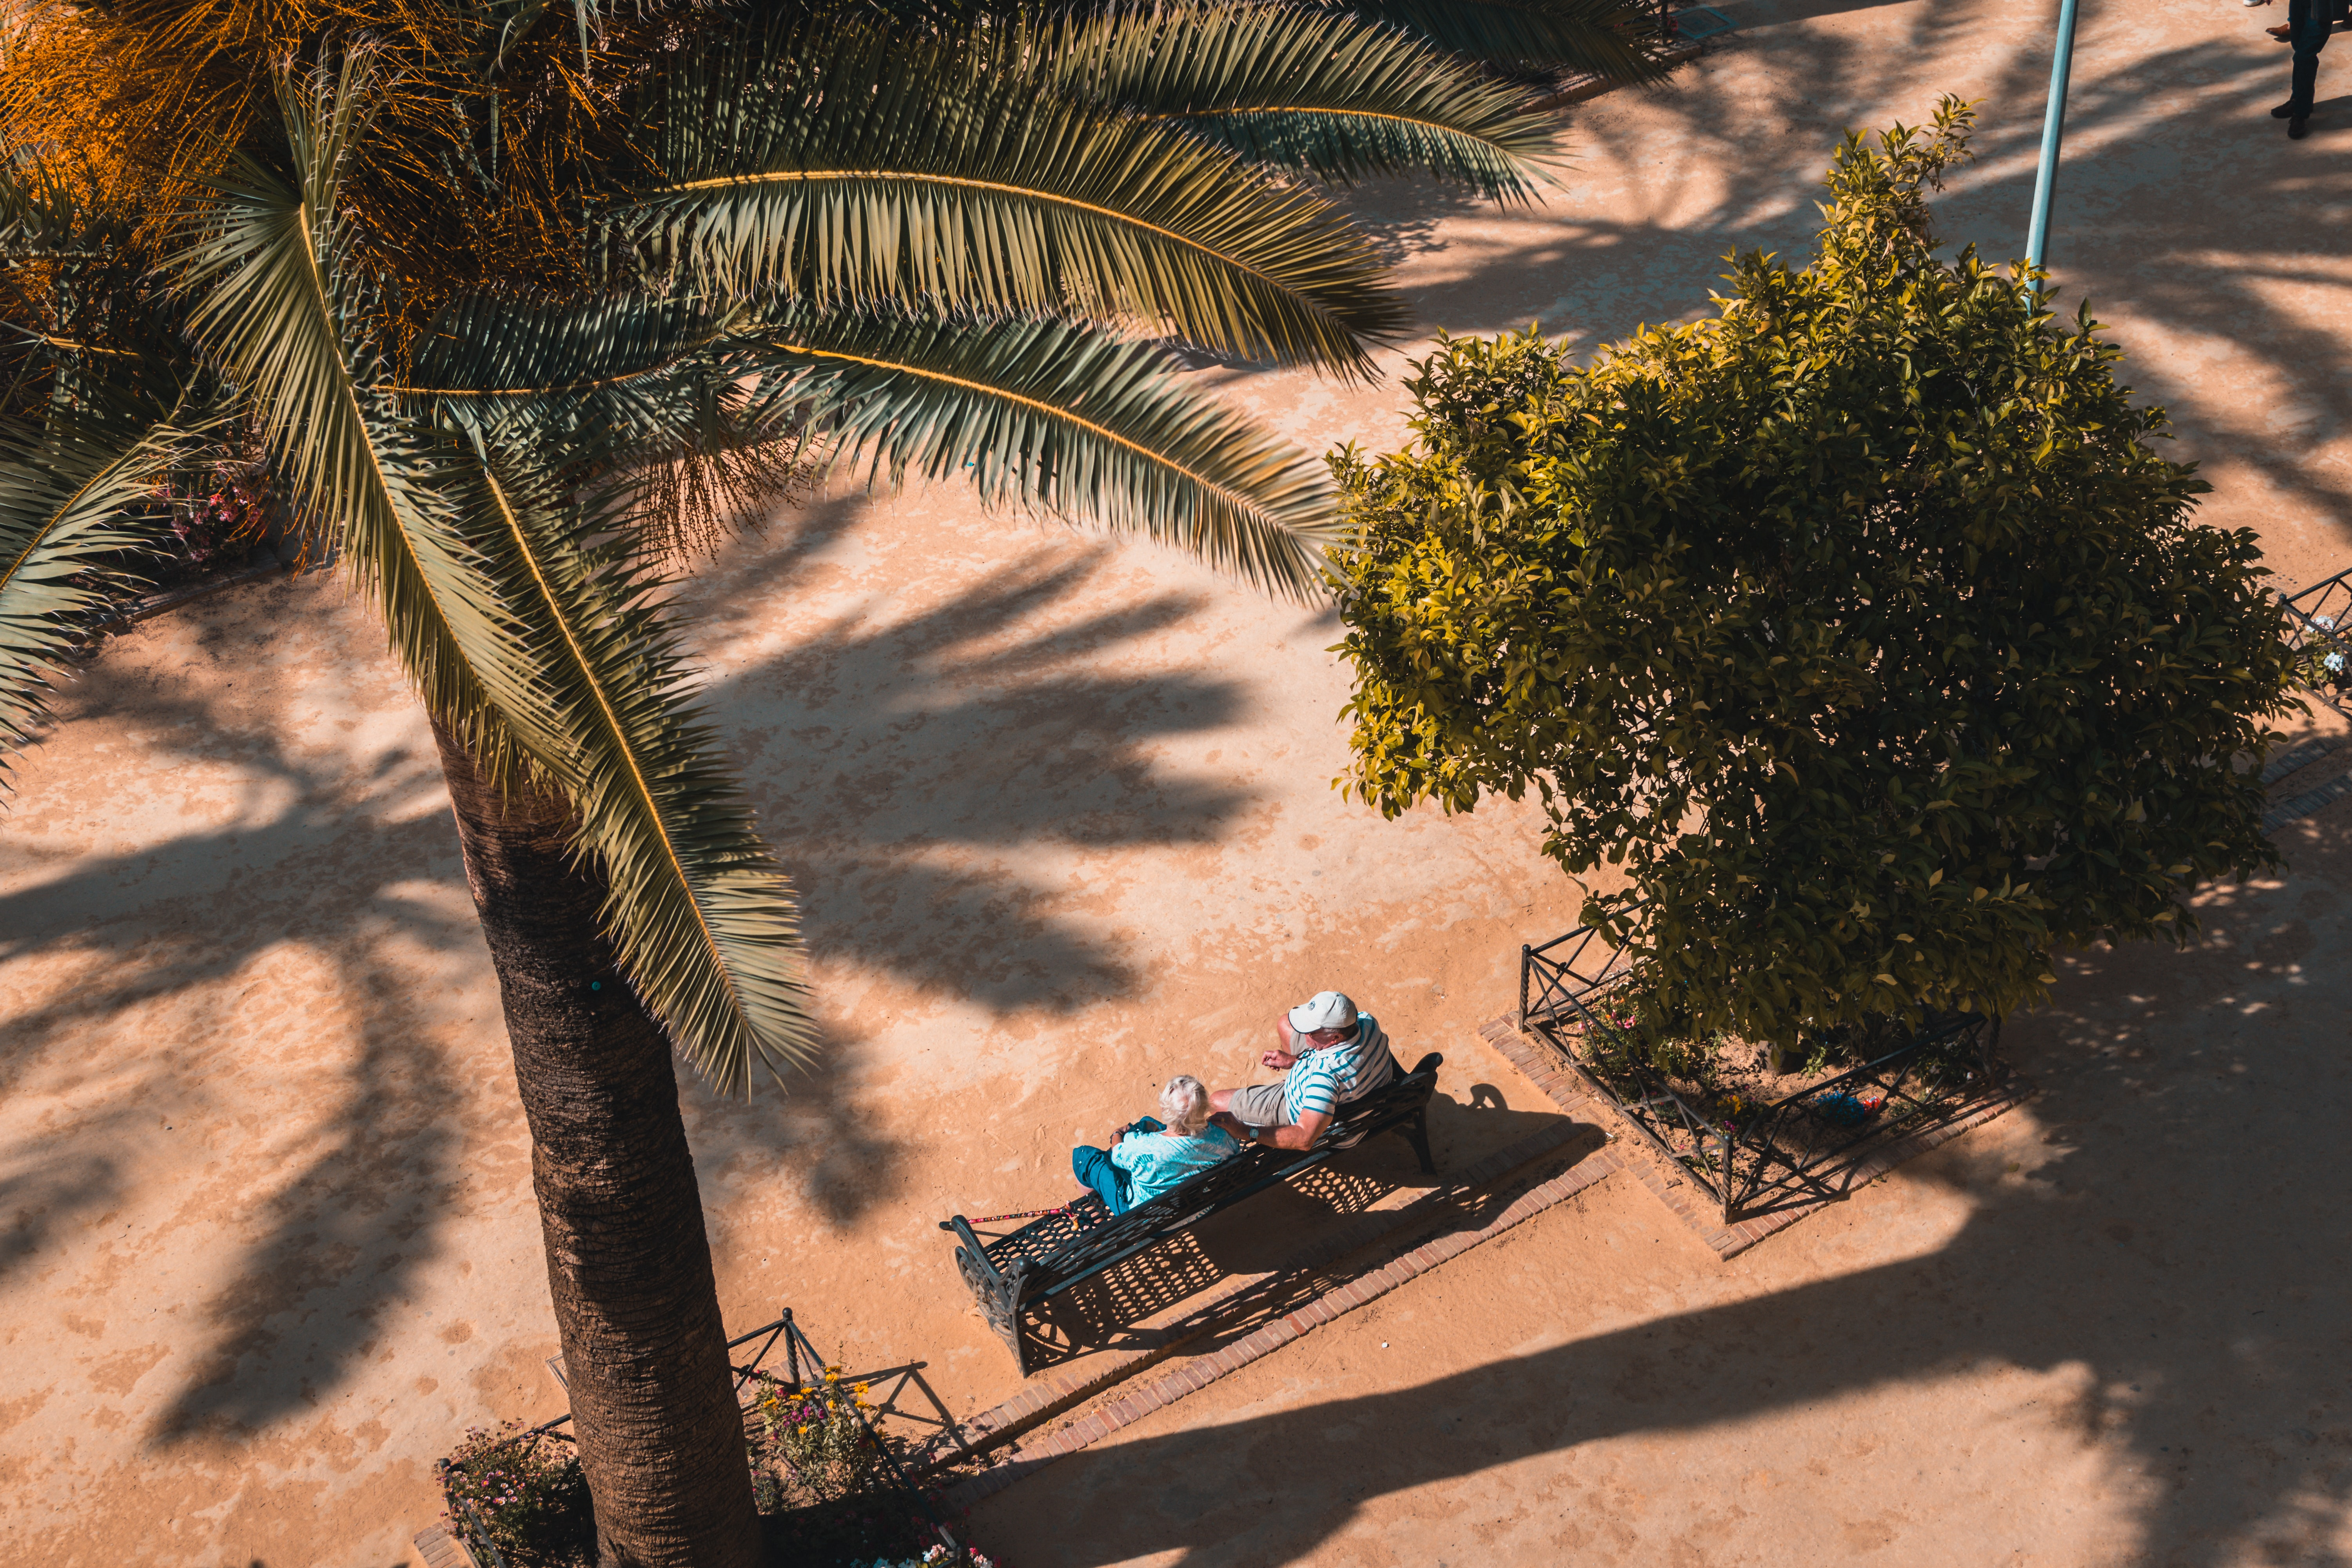 A high-angle shot of an elderly couple seated on a bench under a palm tree